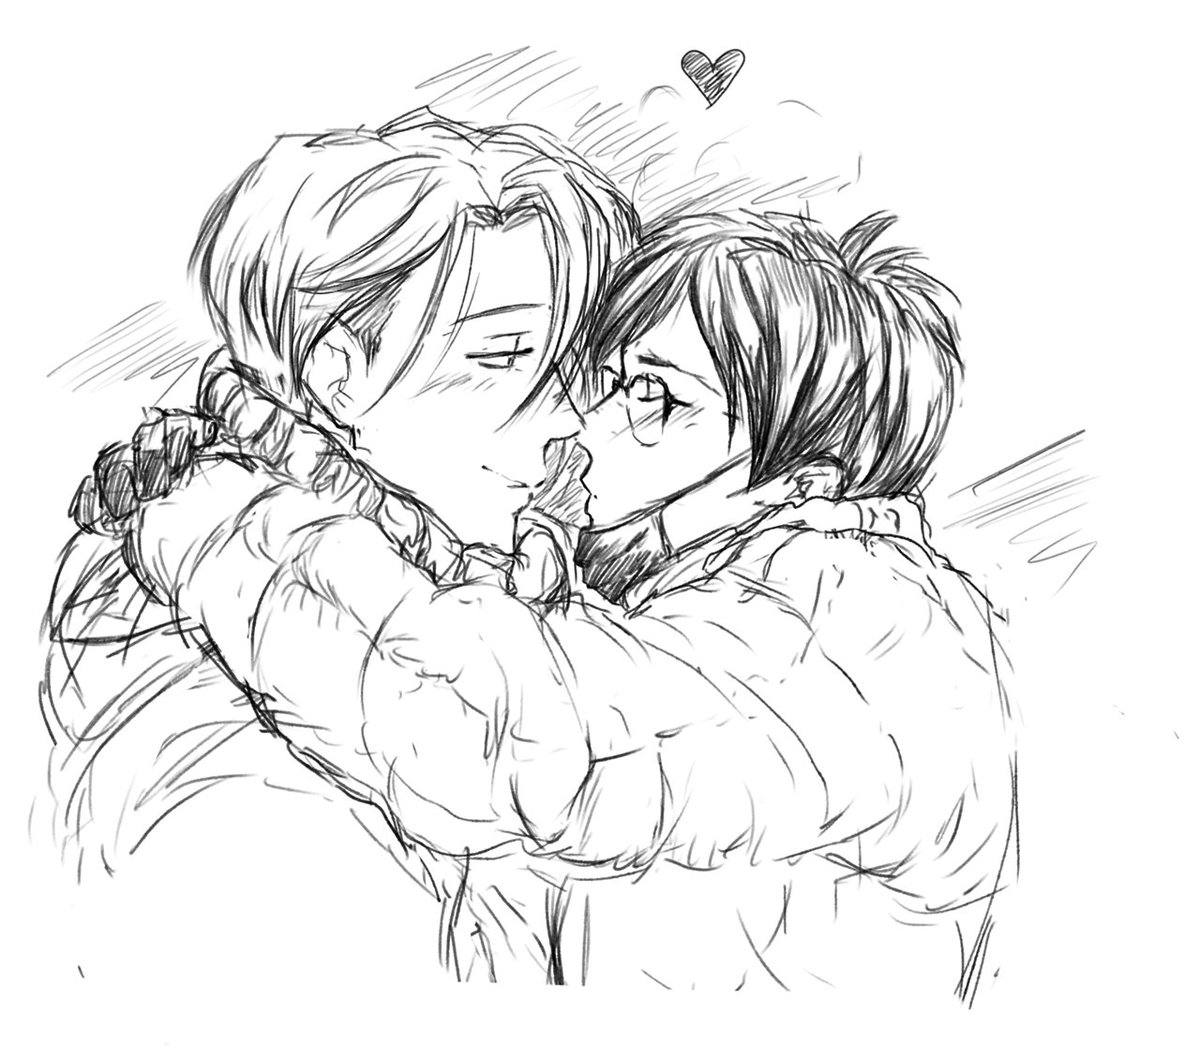 Skeleton Horse On Twitter Things To Do On Saturday Evening Draw The Hell Out Of Your Otp Yes Good Perfect Yurionice Viktuuri Kubo 3260 Jannymedvedeva Https T Co 87hmlollbq